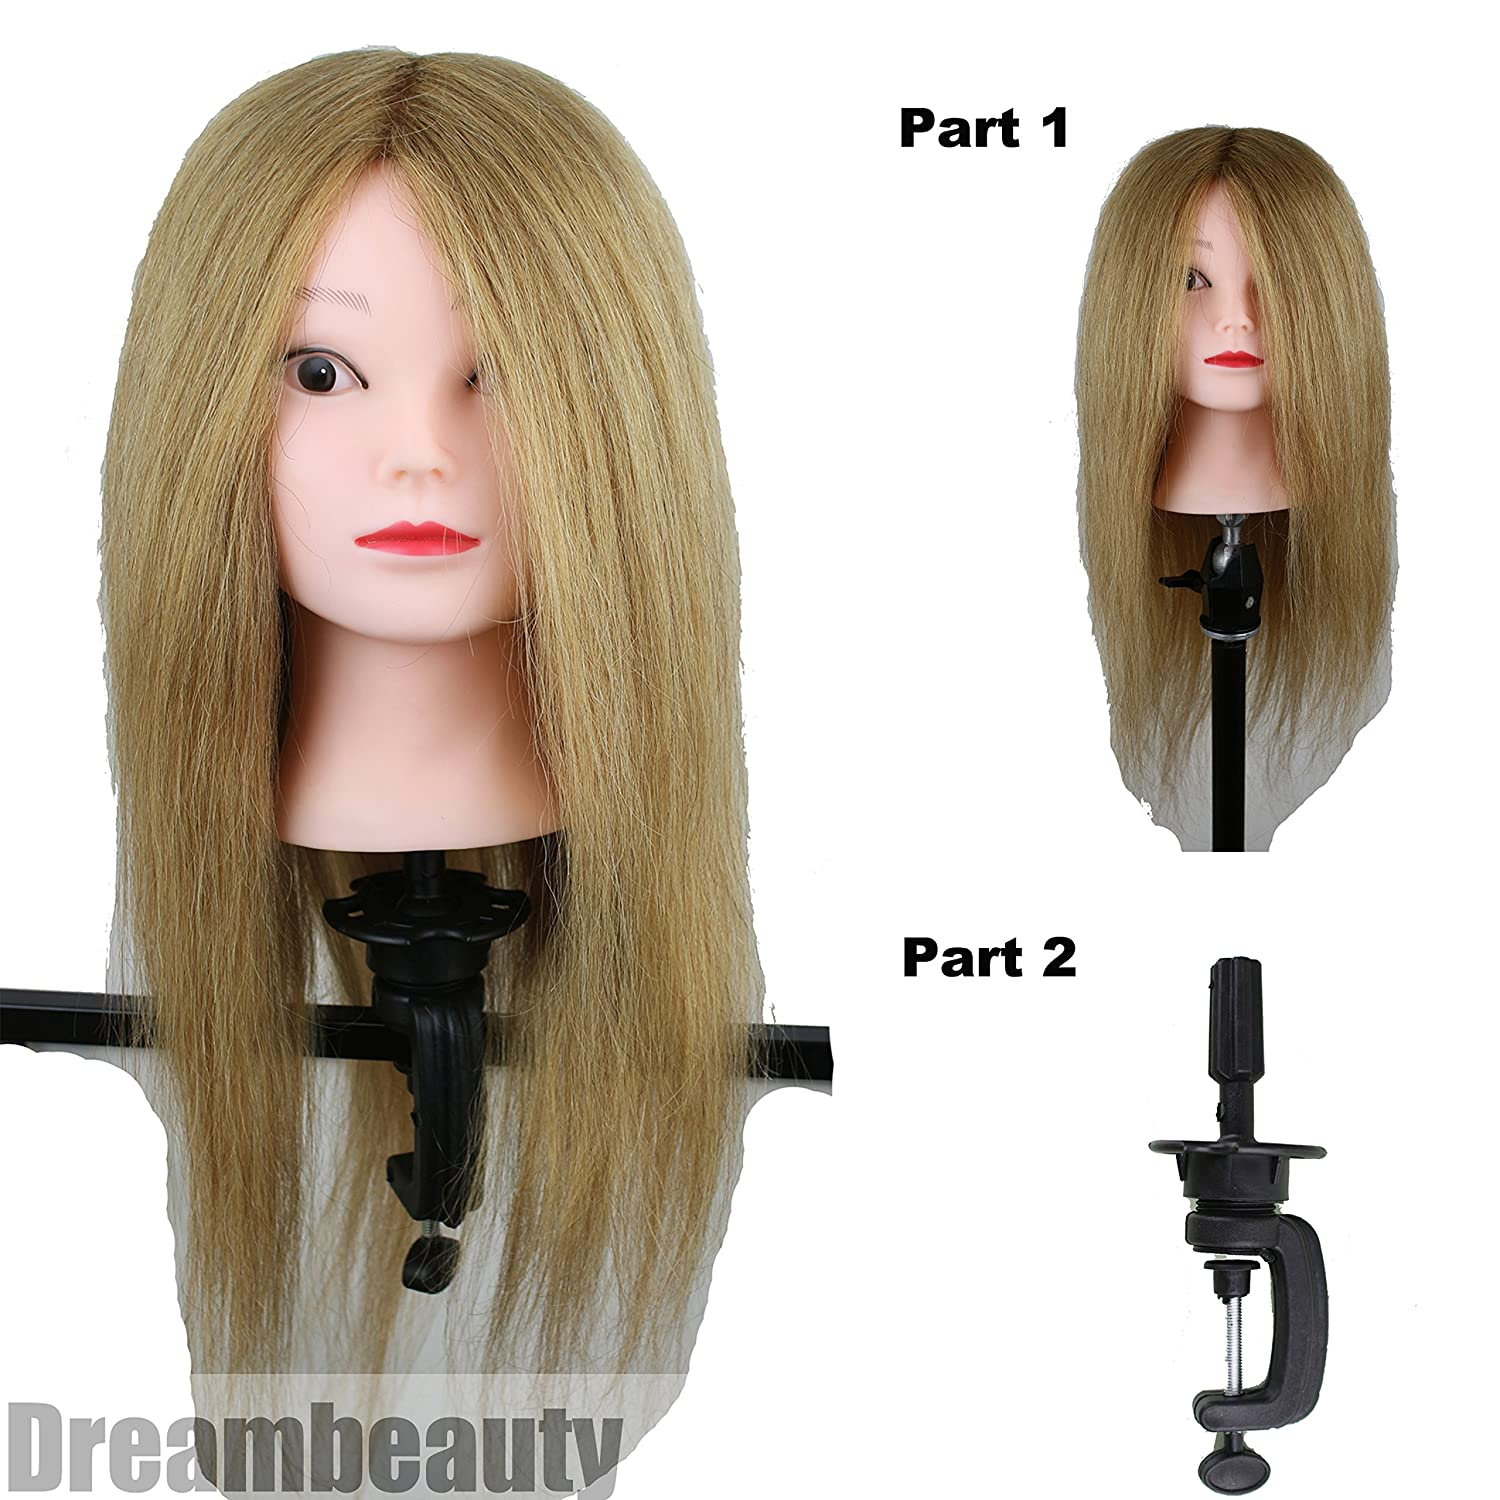 Dreambeauty Hairdressing Training Head 100% Human Hair Blonde Color Mannequin Head for Training and Exams Qingdao Feiyang Hair Co. Ltd